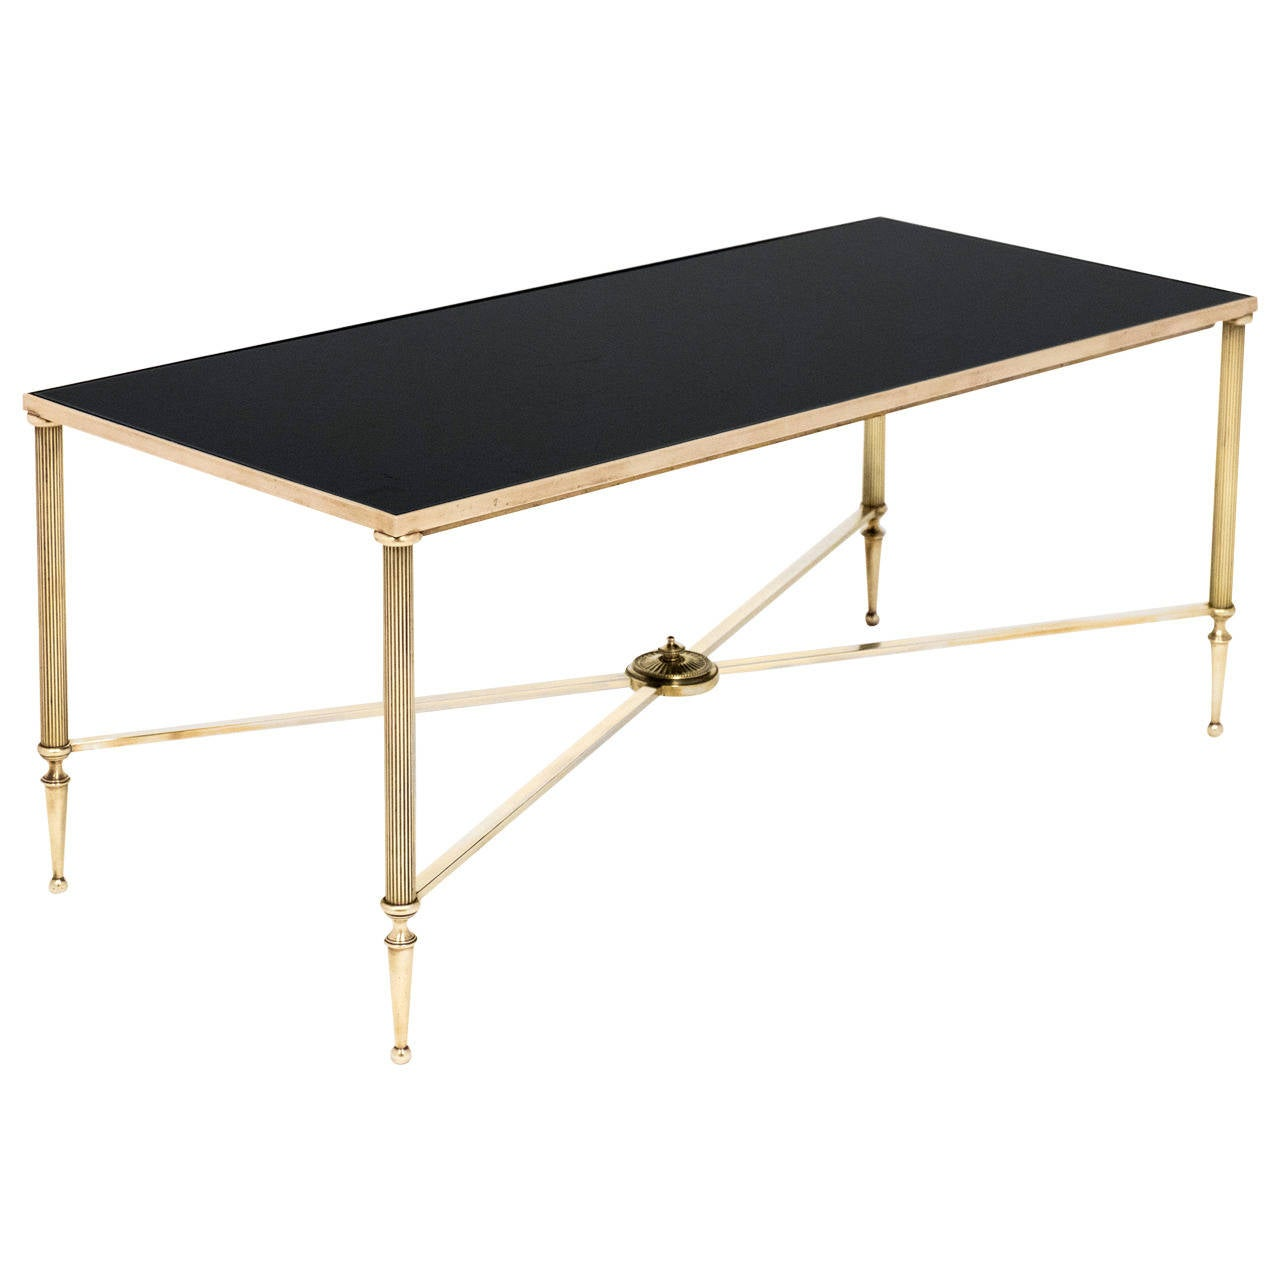 French Vintage Black Glass And Brass Coffee Table At 1stdibs: antique brass coffee table